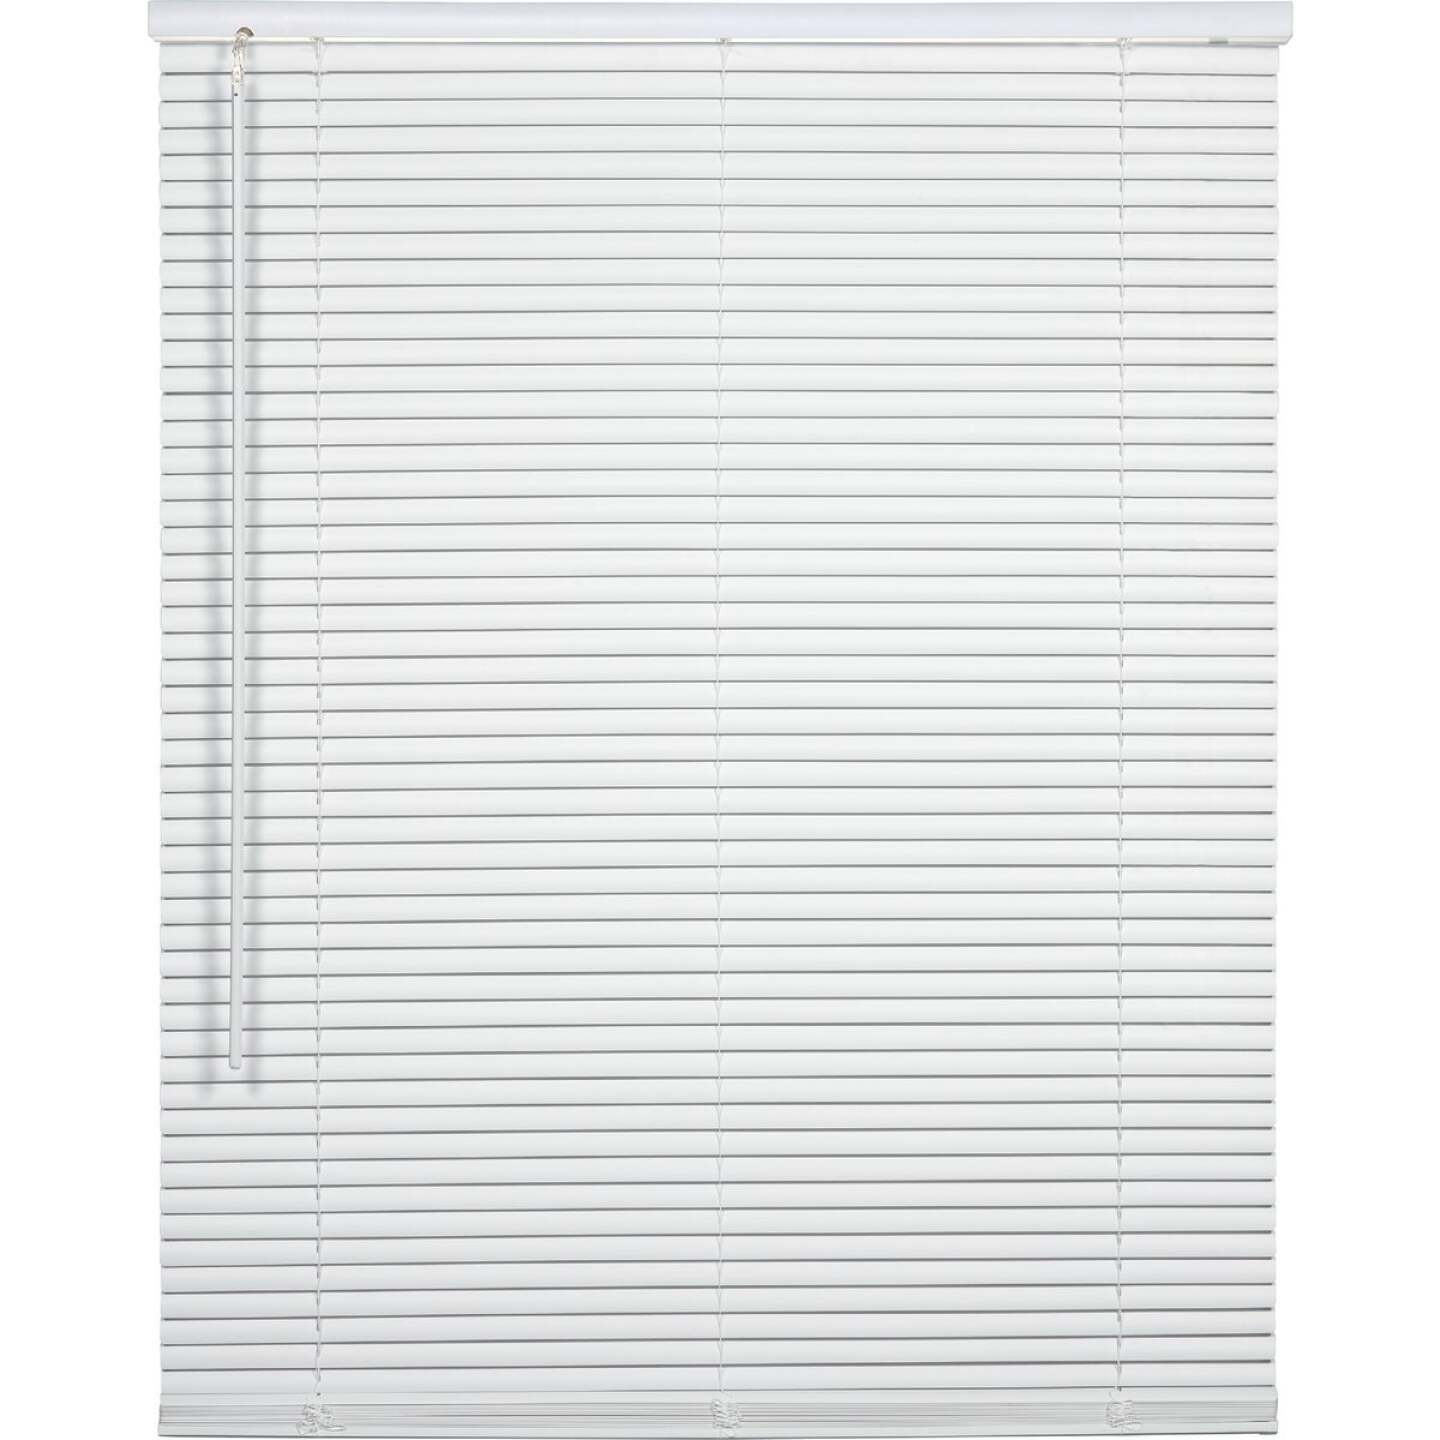 Home Impressions 21 In. x 64 In. x 1 In. White Vinyl Light Filtering Cordless Mini Blind Image 1